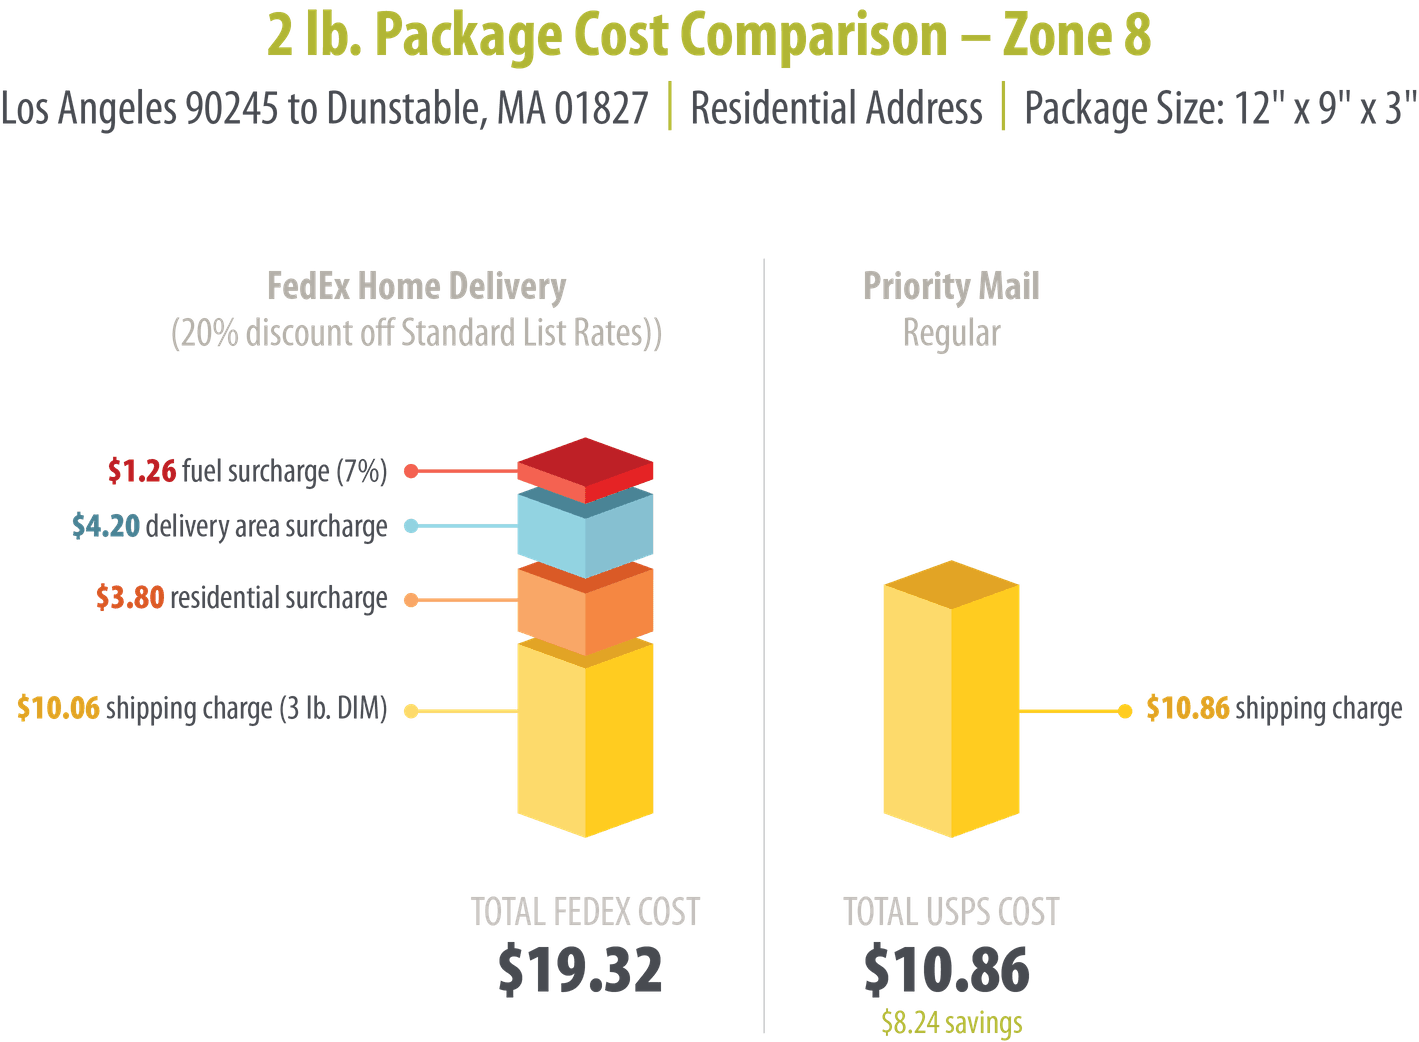 2 lb. Package Cost Comparison - Zone 4